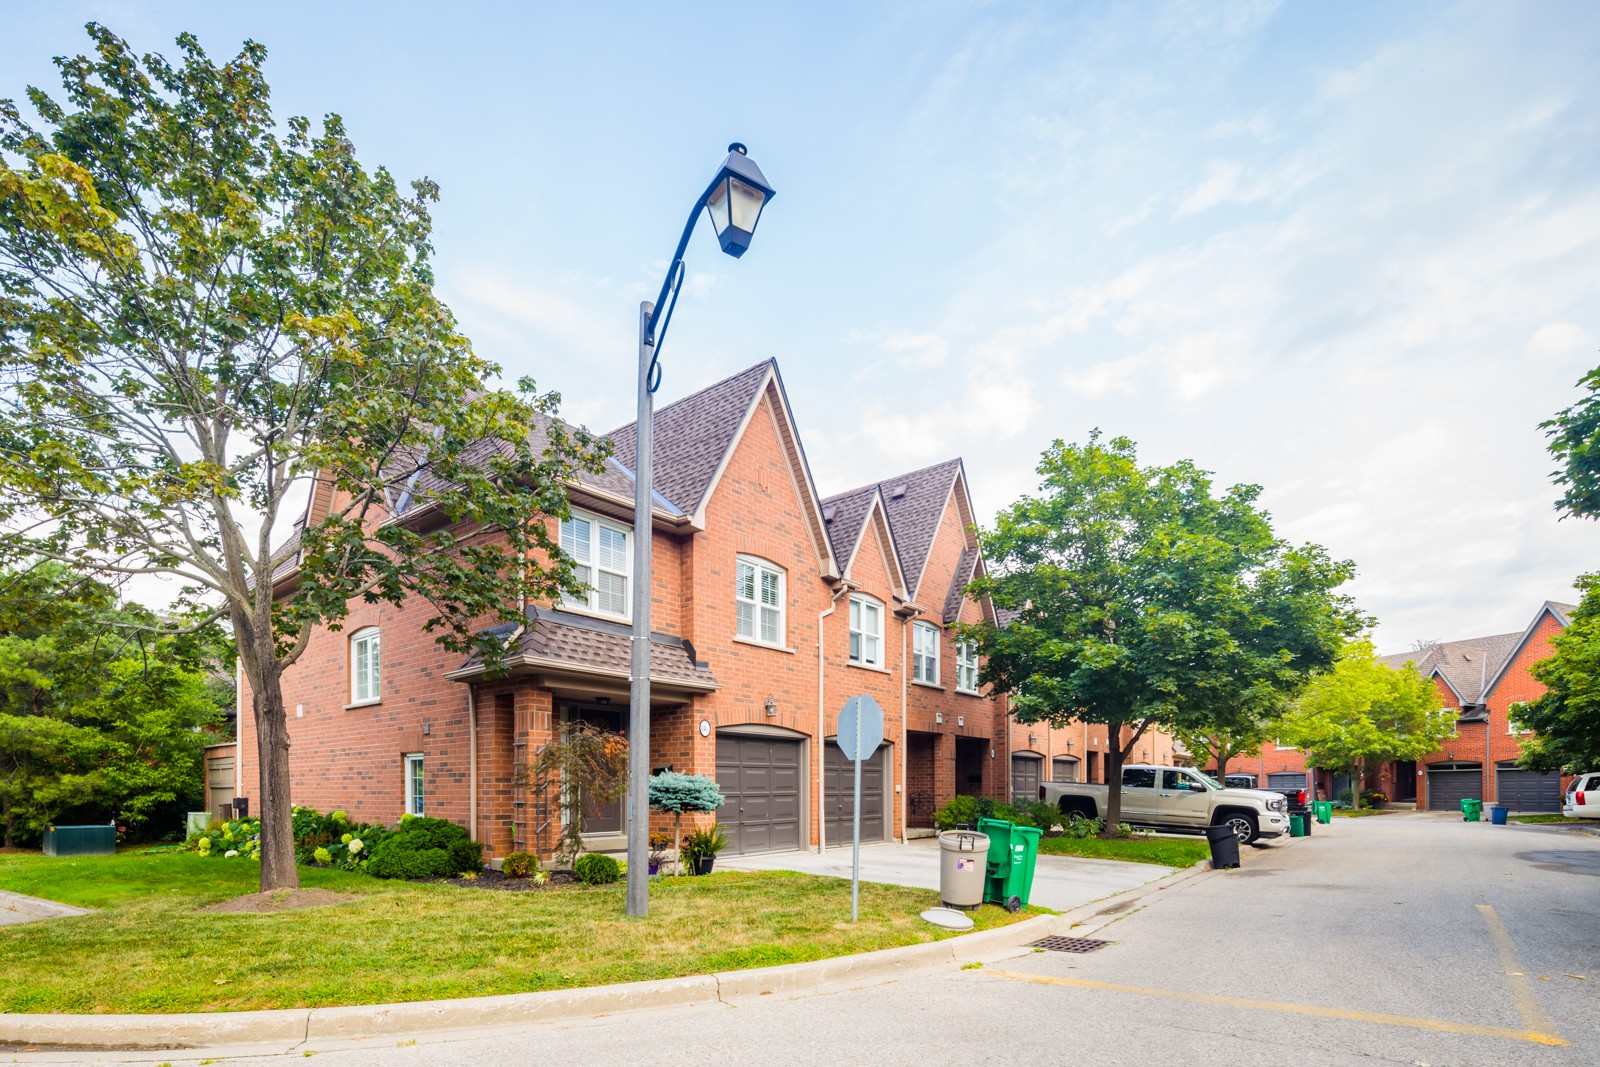 1100 Queen Street West Townhouses at 1100 Queen St W, Mississauga 0